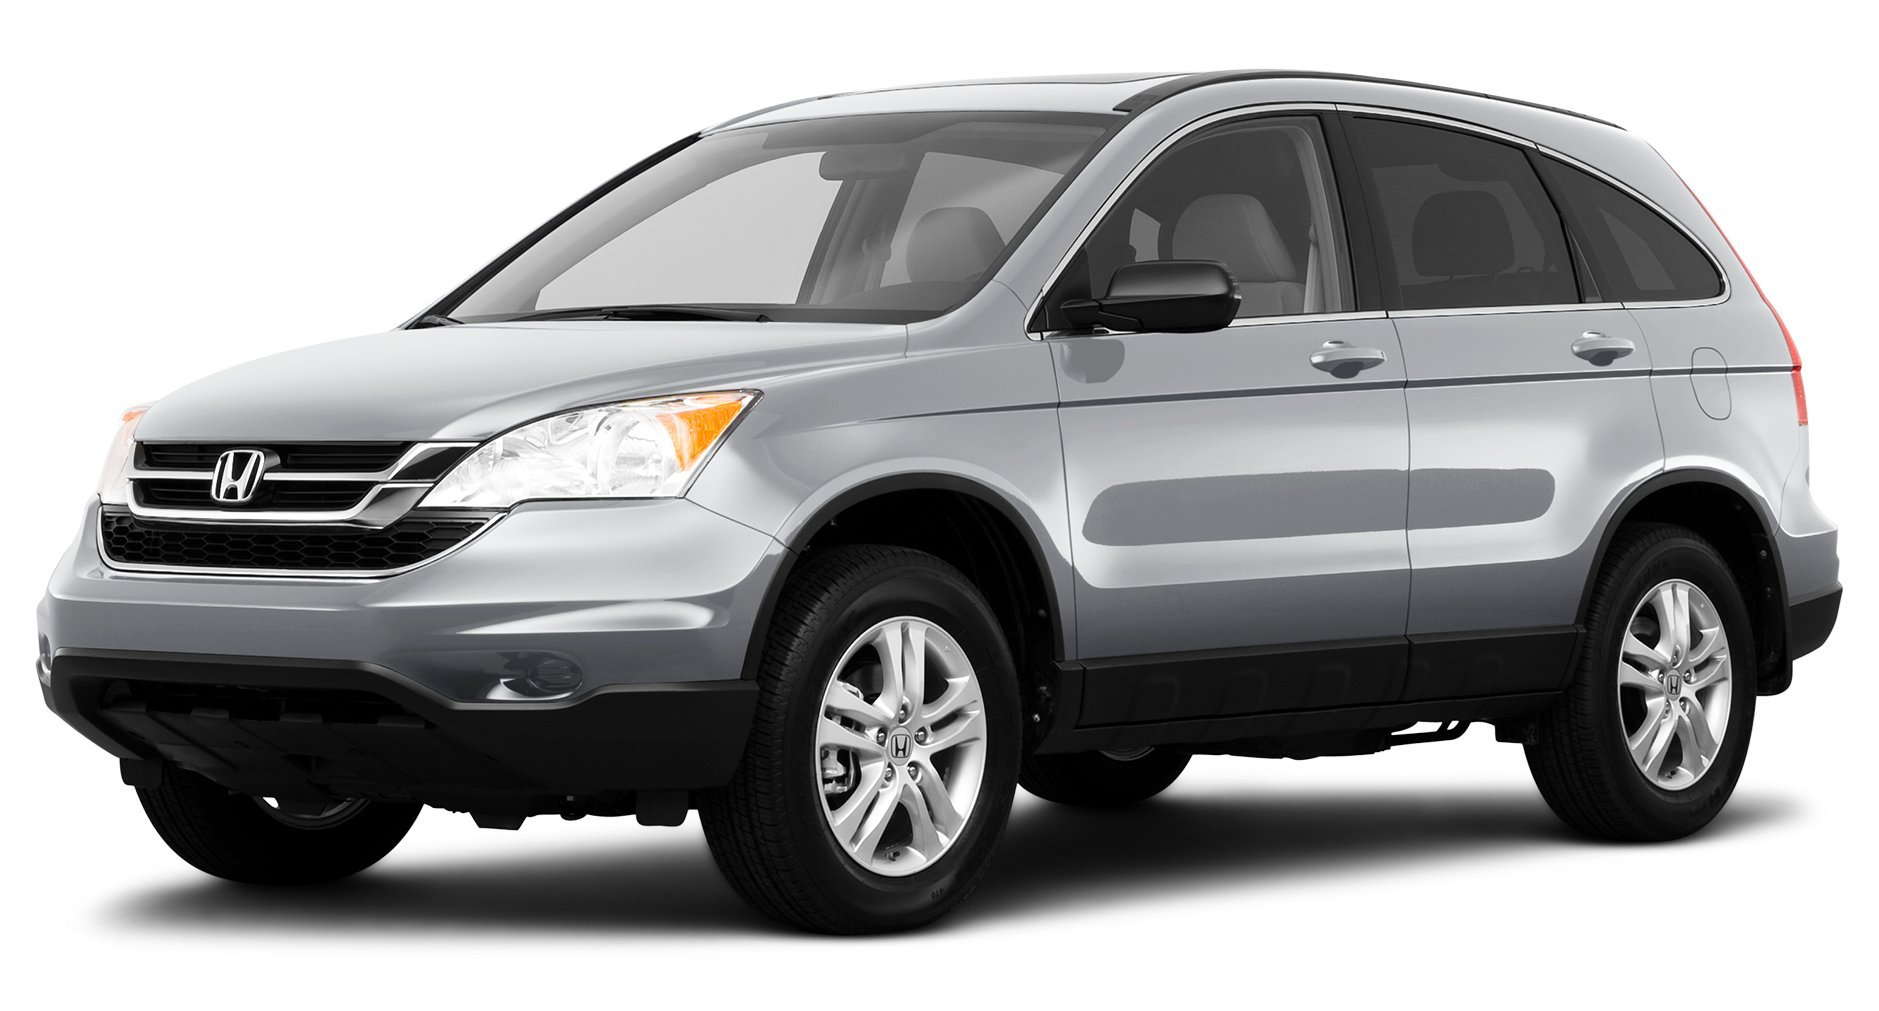 71hstAqHvGL amazon com 2010 honda cr v reviews, images, and specs vehicles 2014 Honda CR-V at mifinder.co